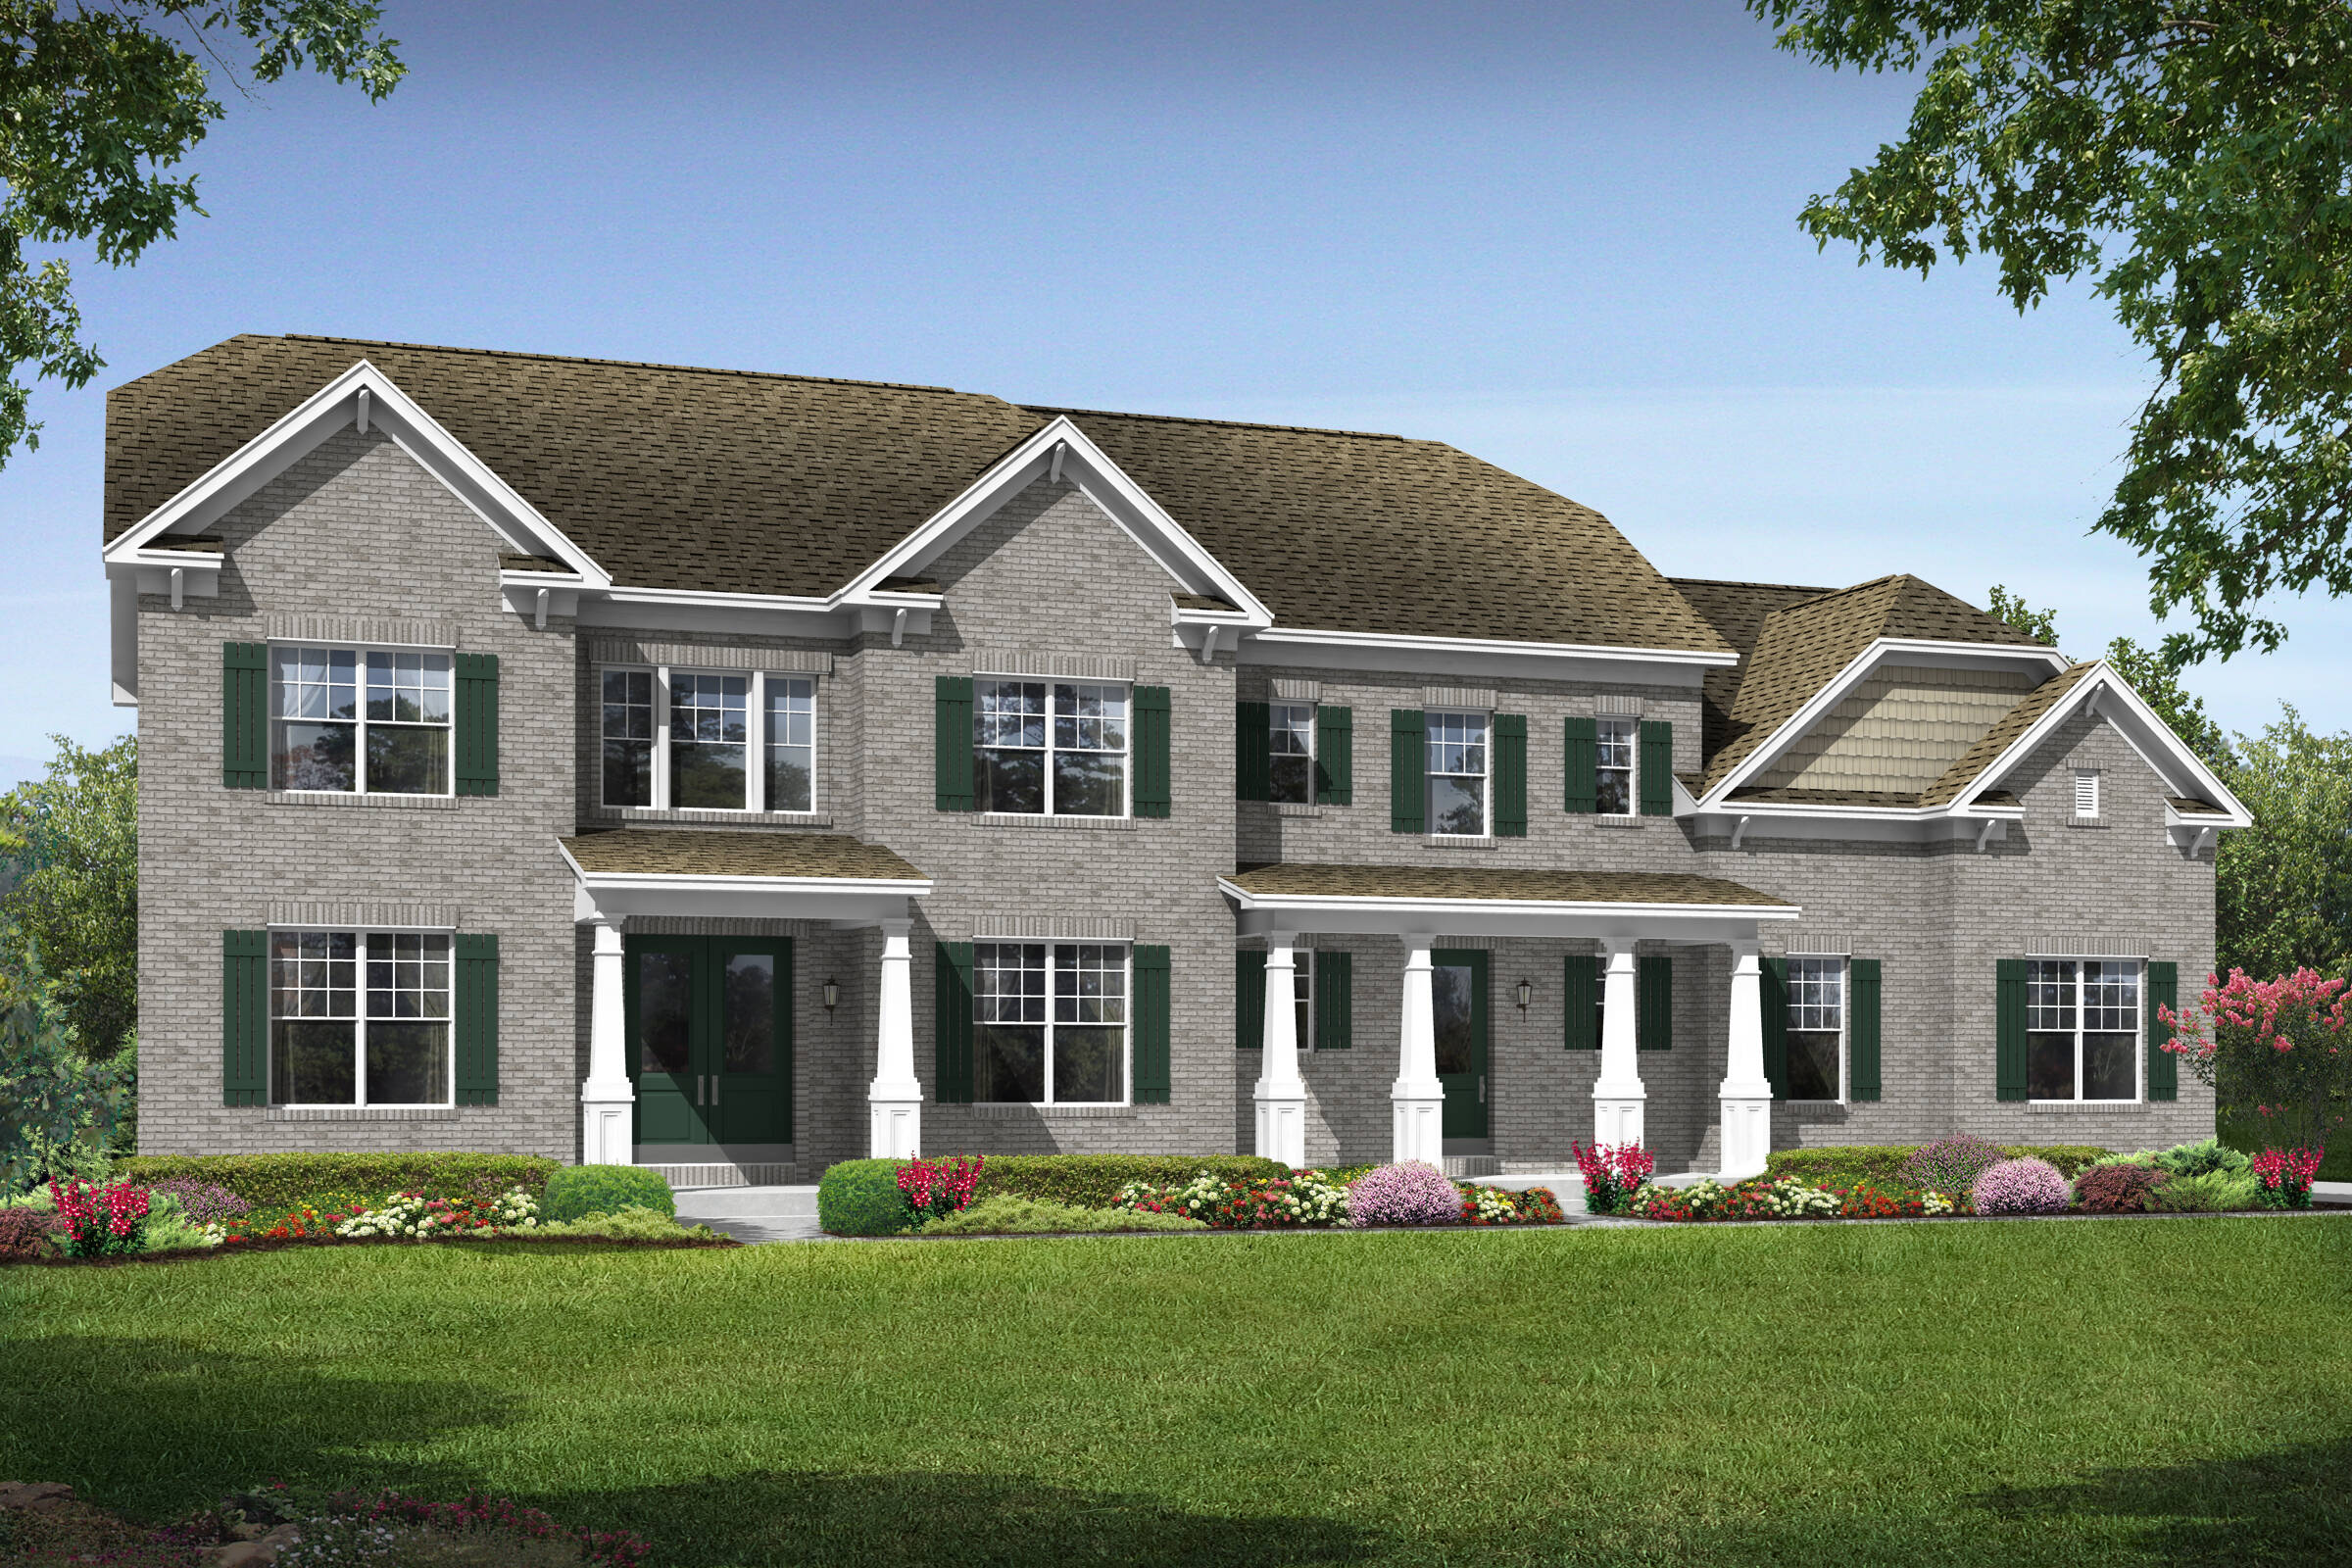 rosewell-e-new-homes-at-hunters-pond